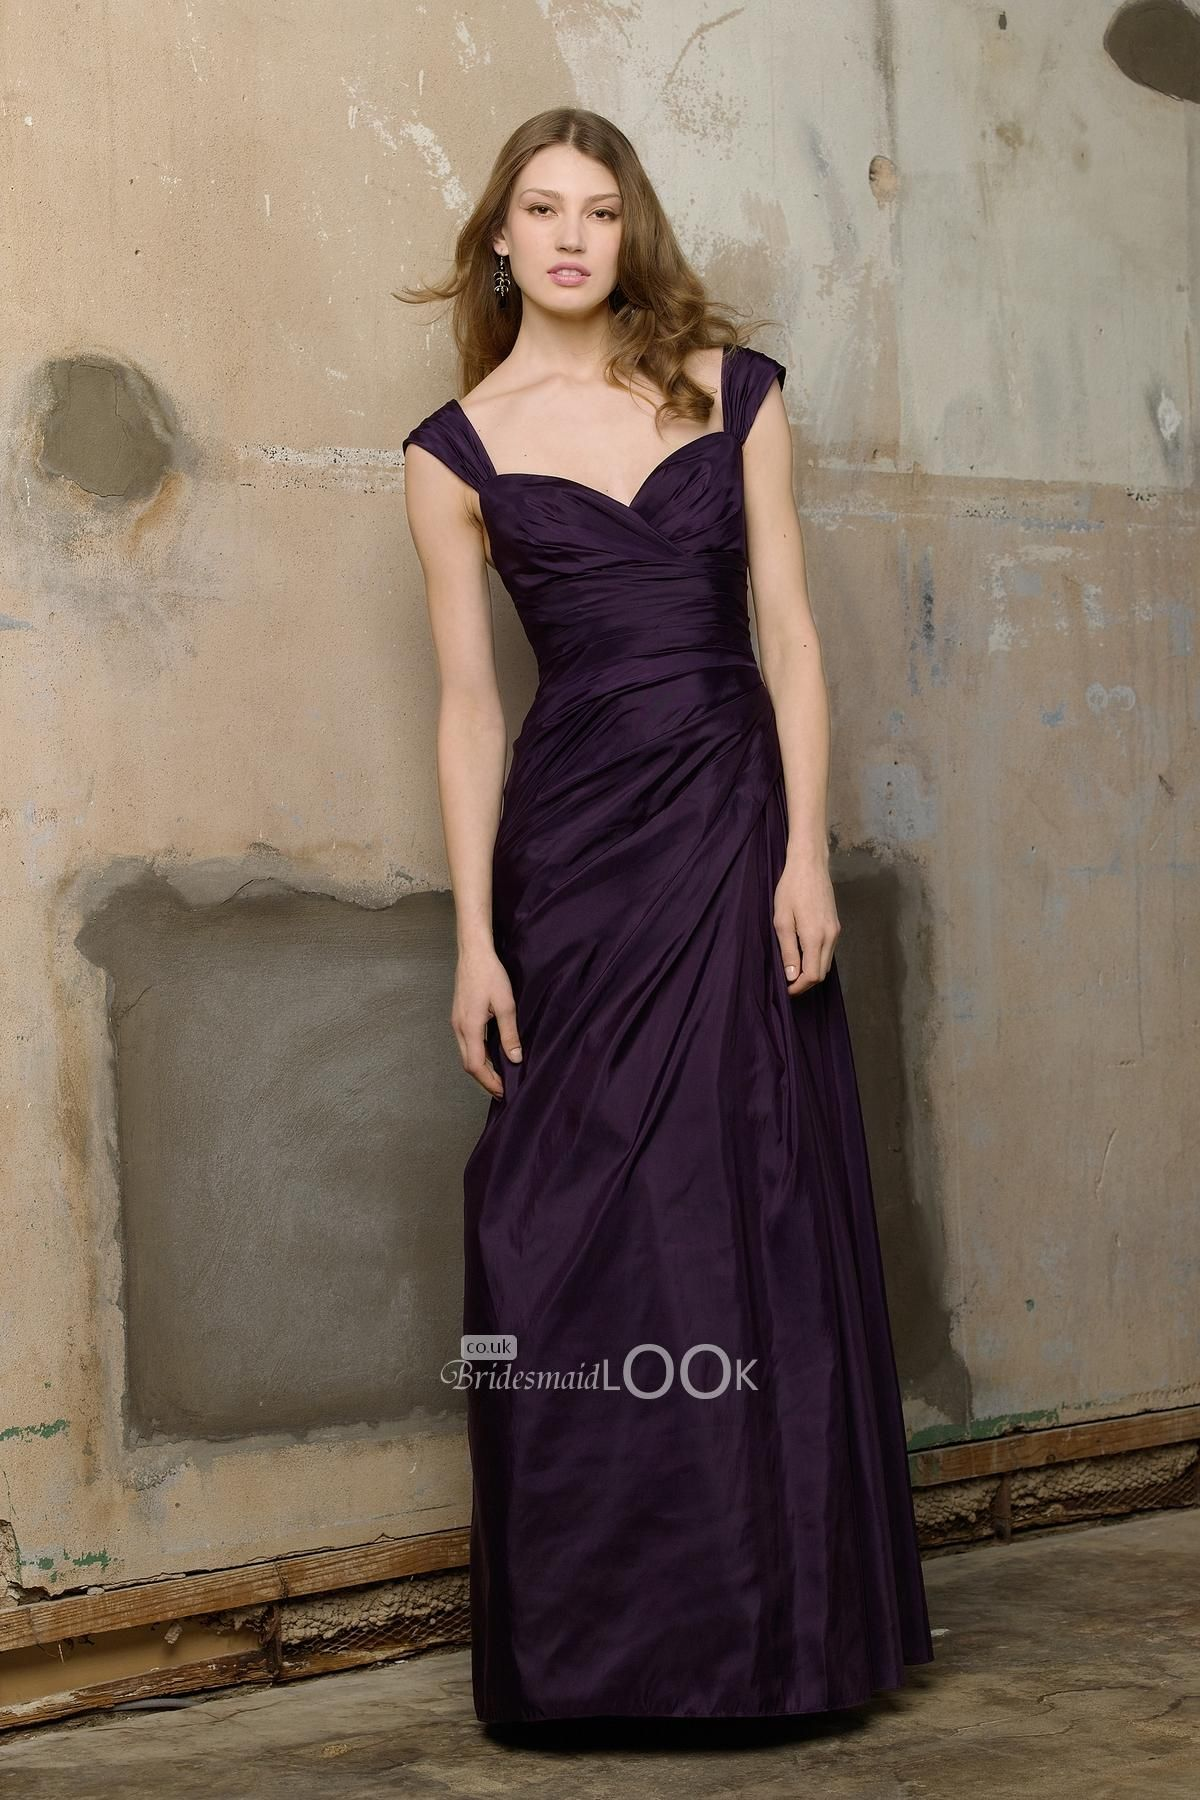 Taffeta plum bridesmaid dress with shirred wide straps and long